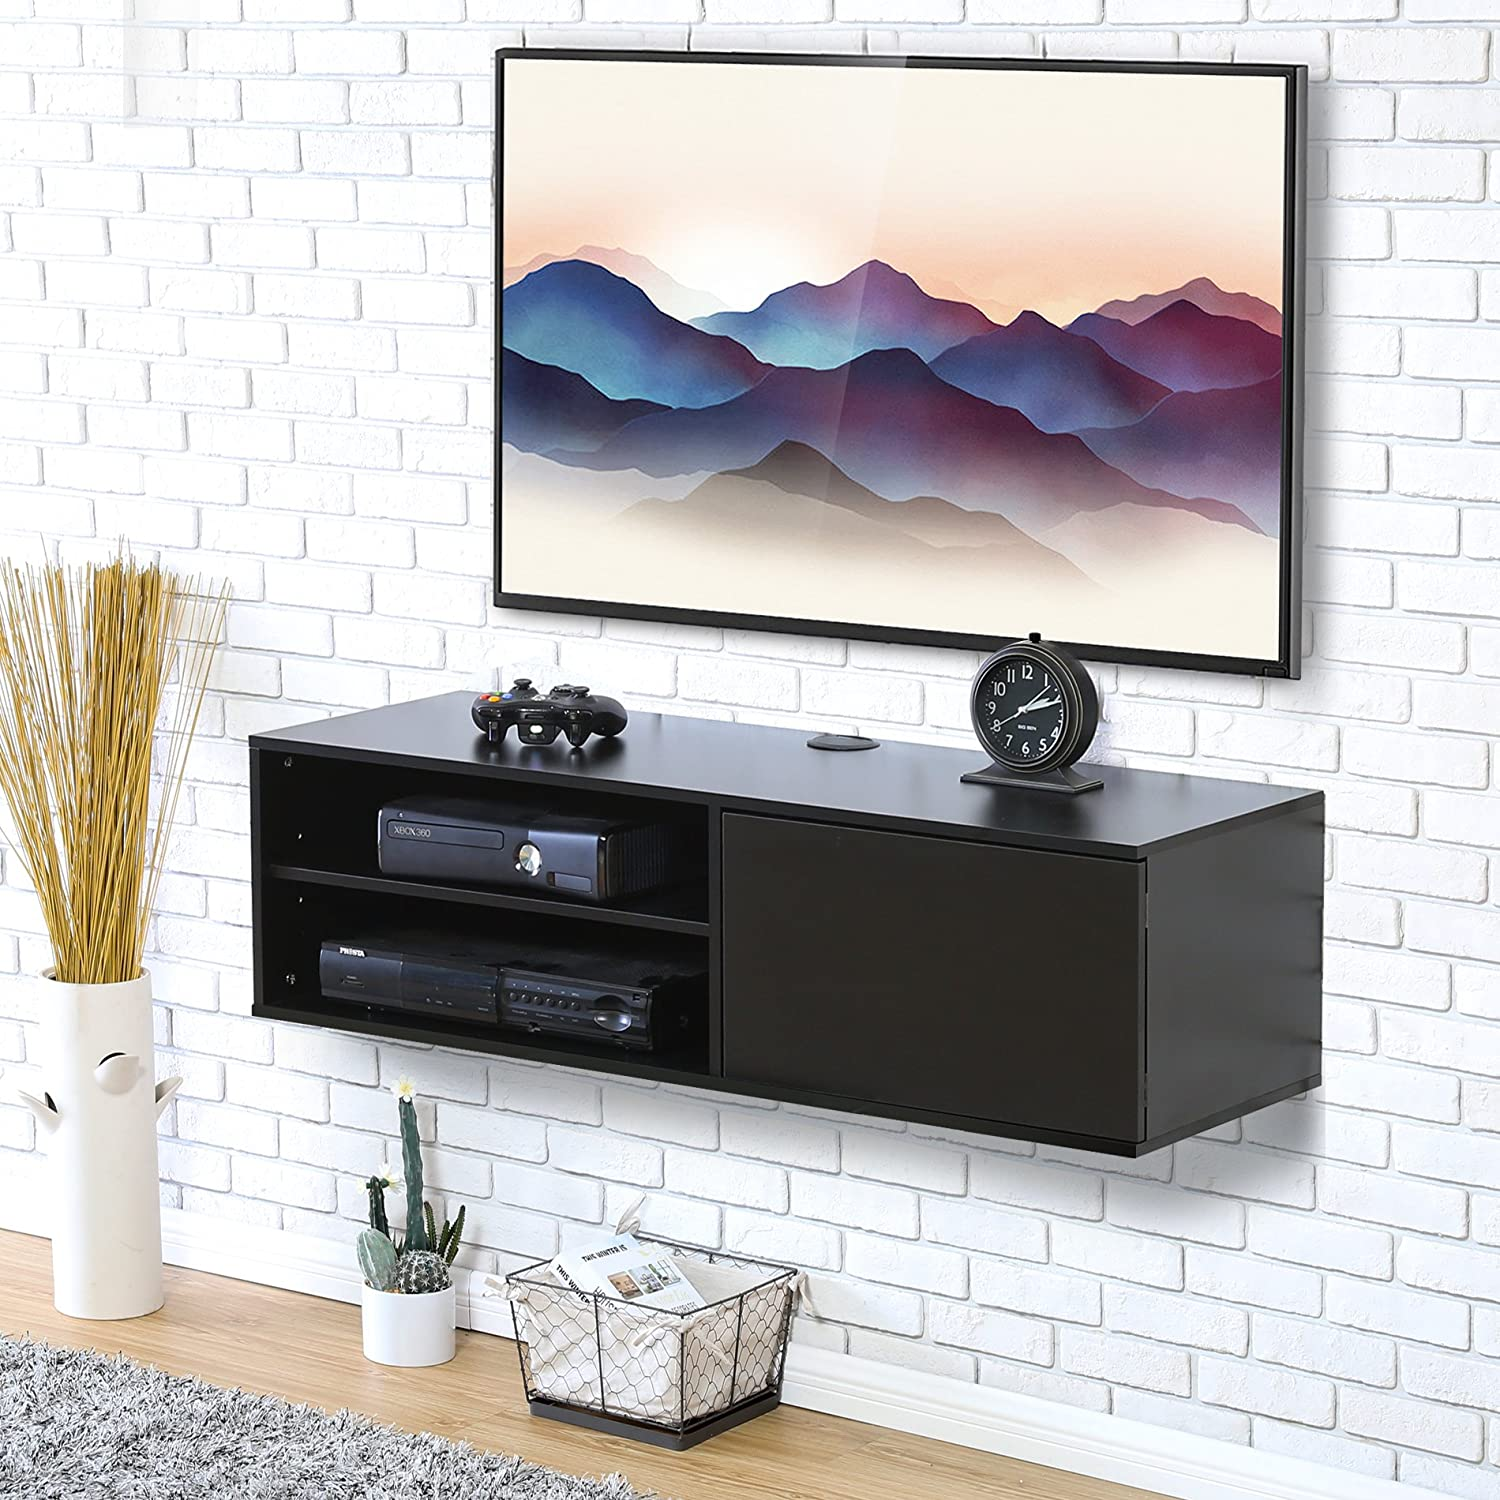 Fitueyes 2 Cube Wall Mounted Audio/Video Console Storage Cabinet Floating TV Stand Black AV Shelves DS310801WB